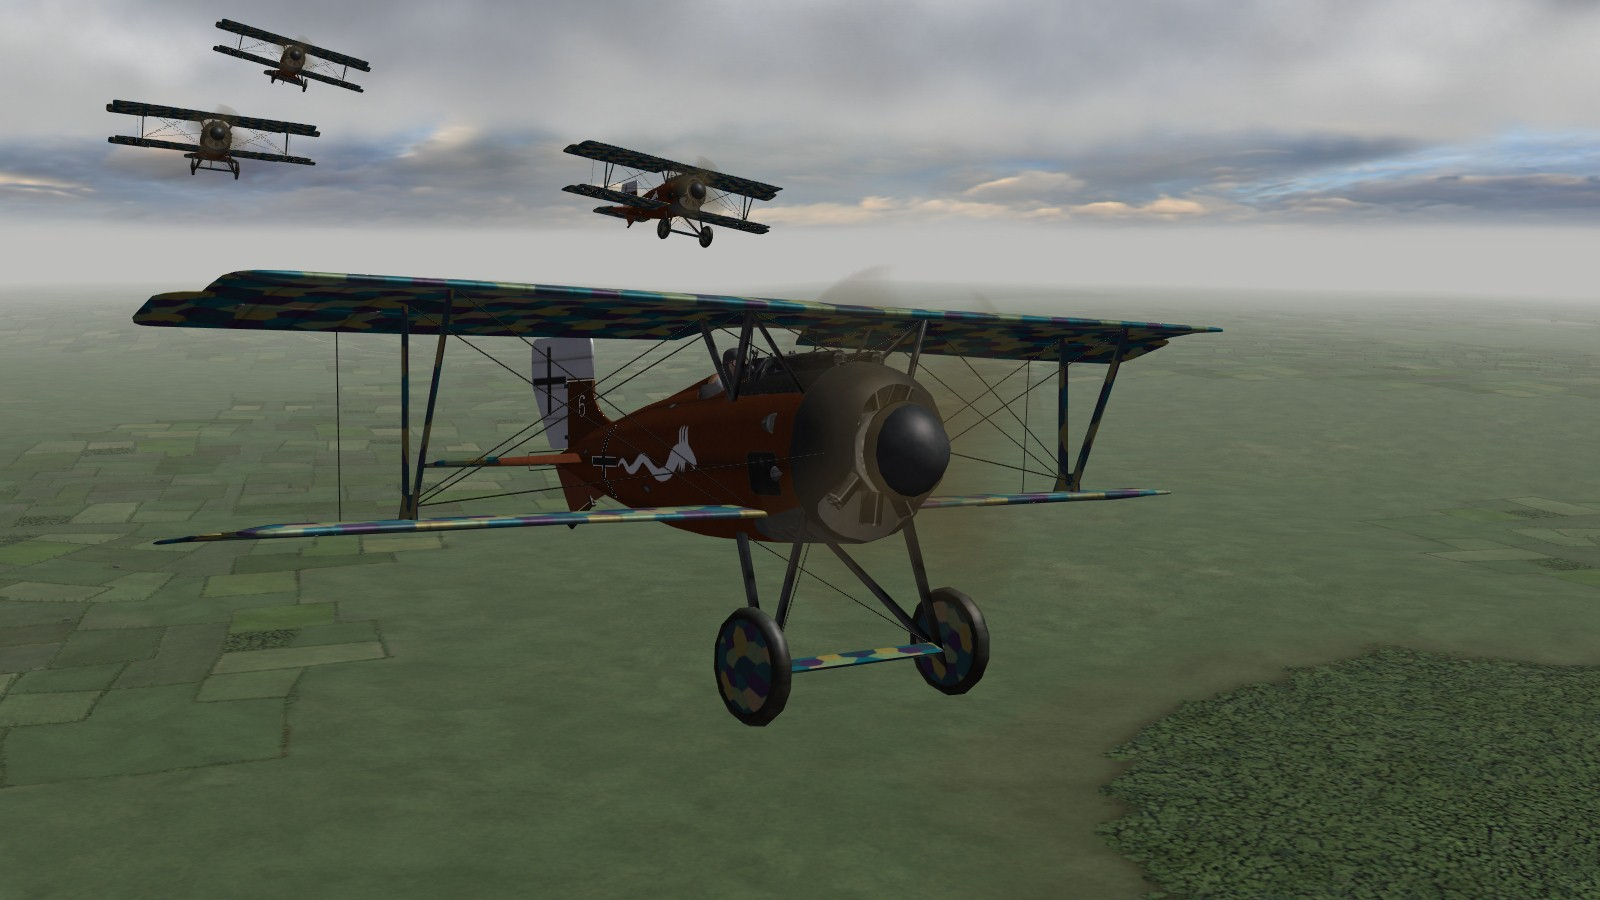 First Eagles 2 - 'It's not the Pfalz or the Fokker scout, it's the Siemens Schuckert we worry about'